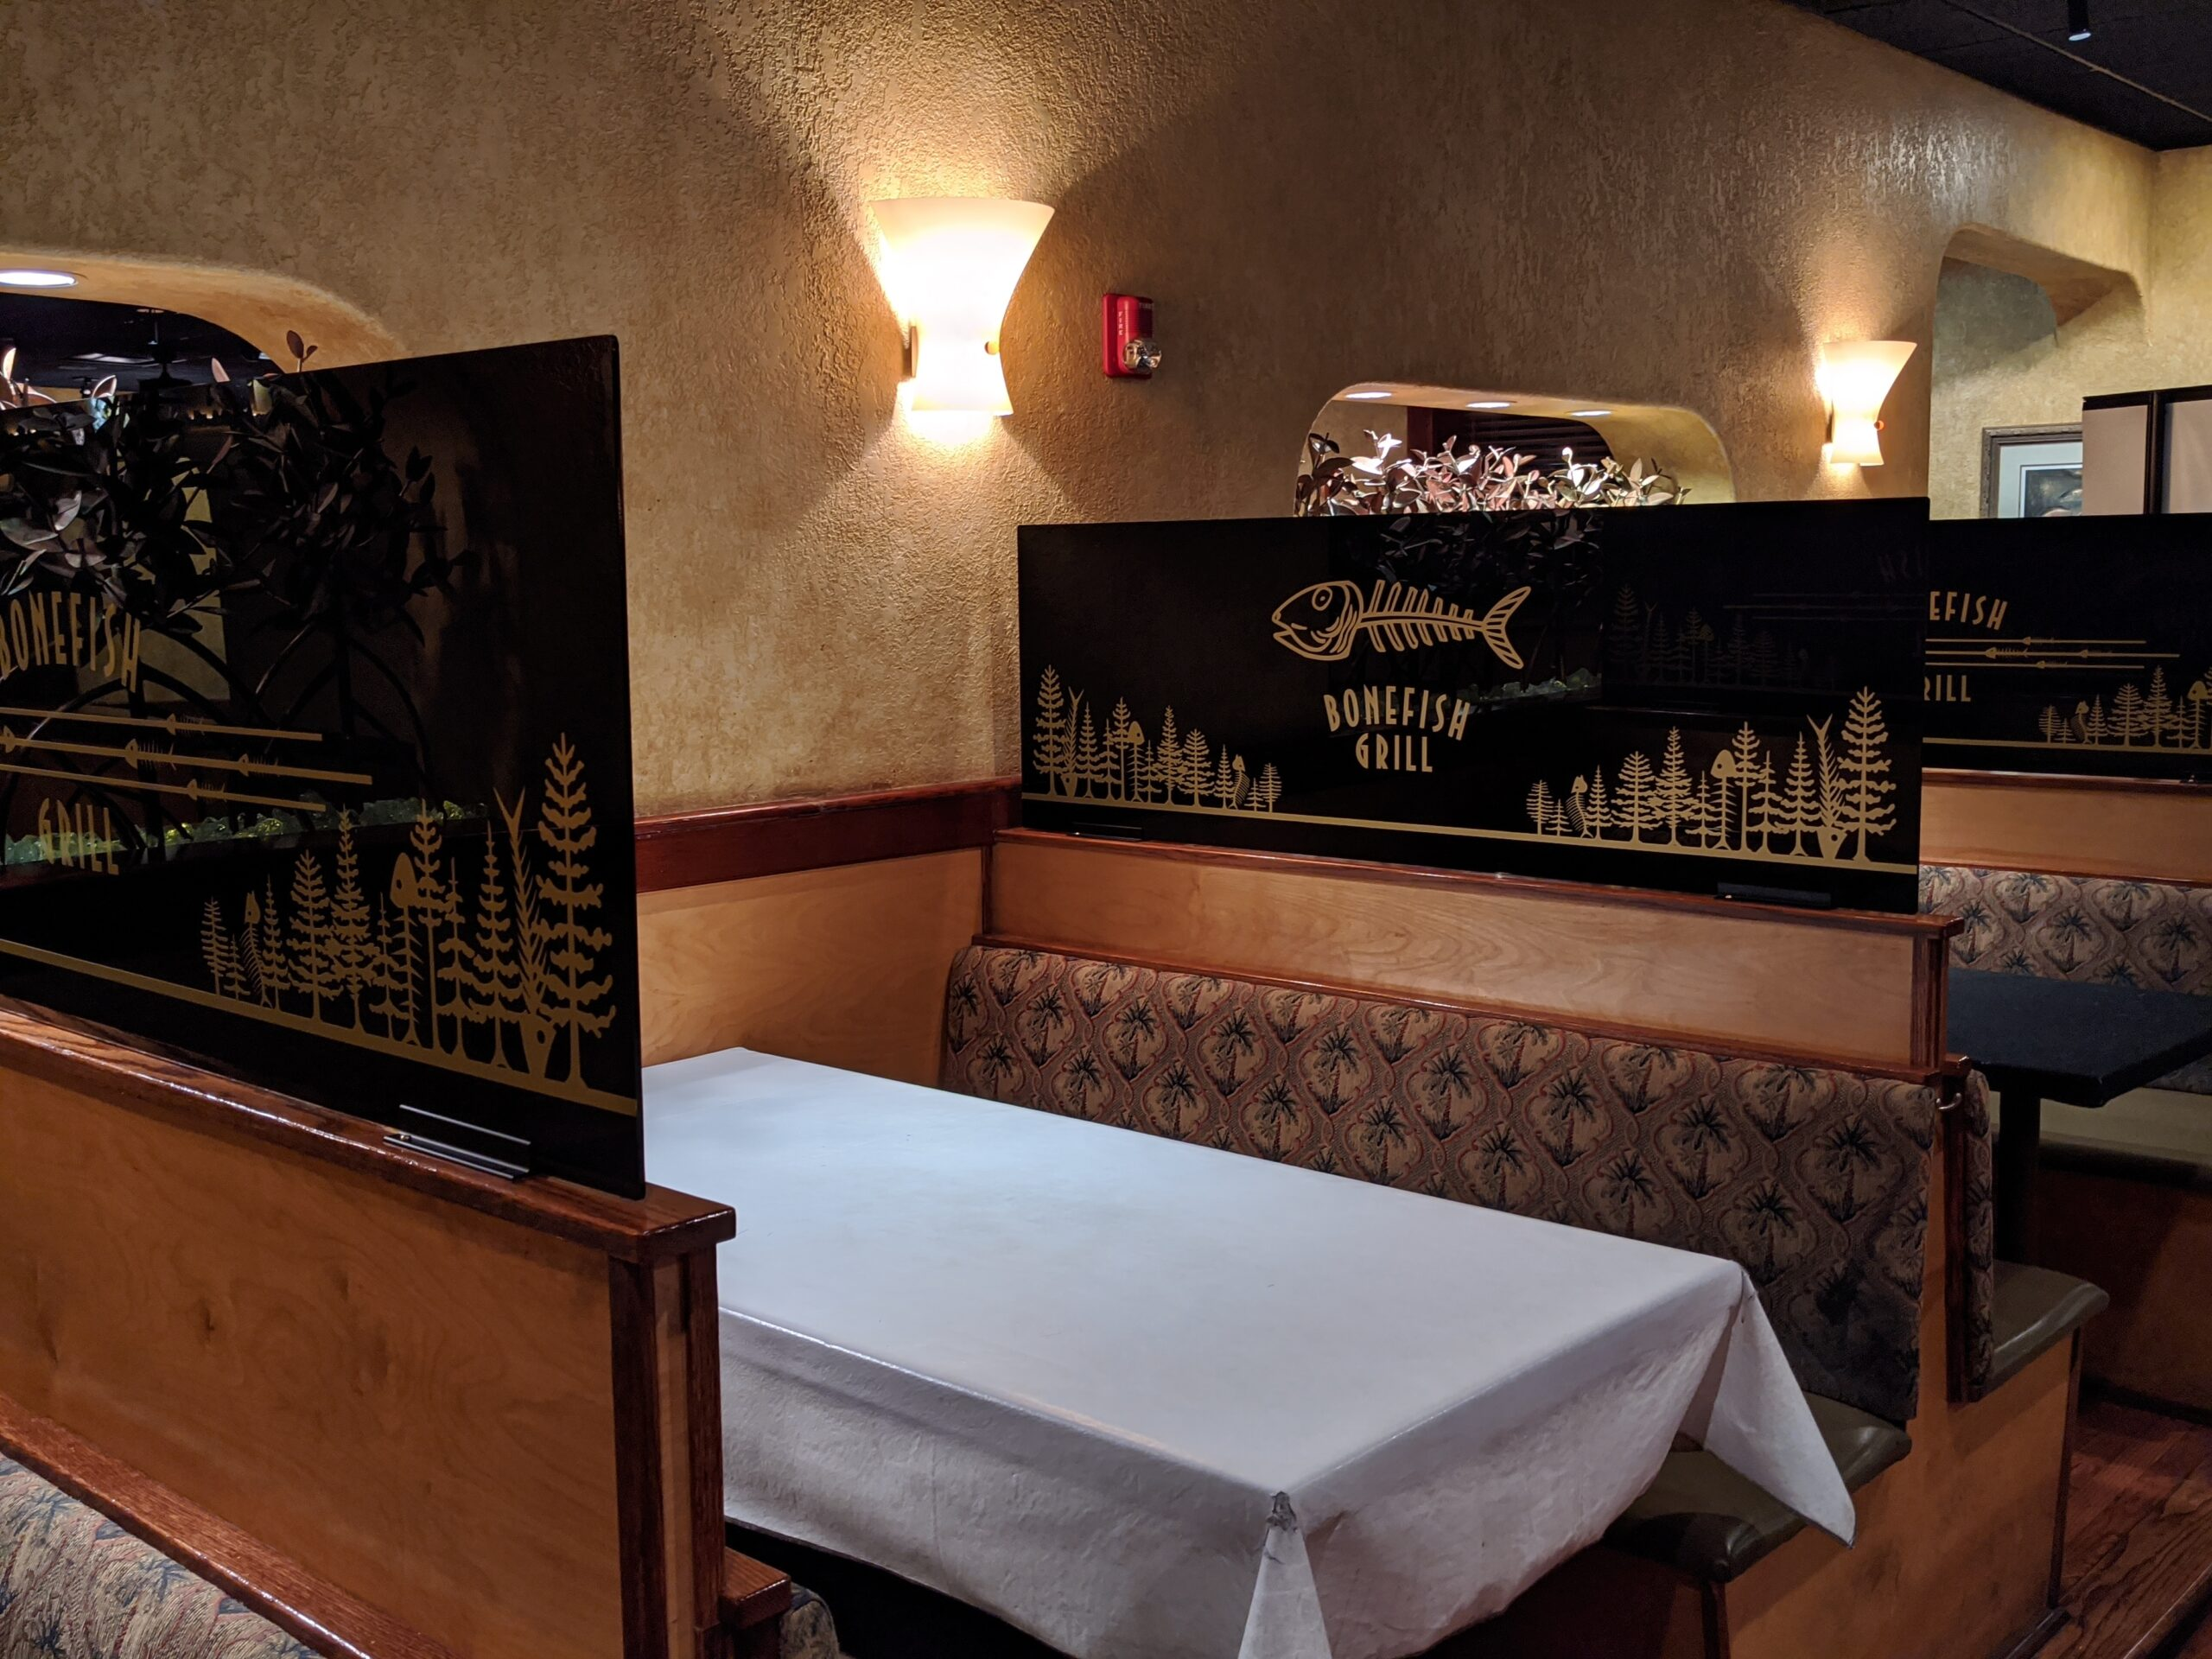 Bonefish Grill Restaurant plastic booth dividers with customer designs.